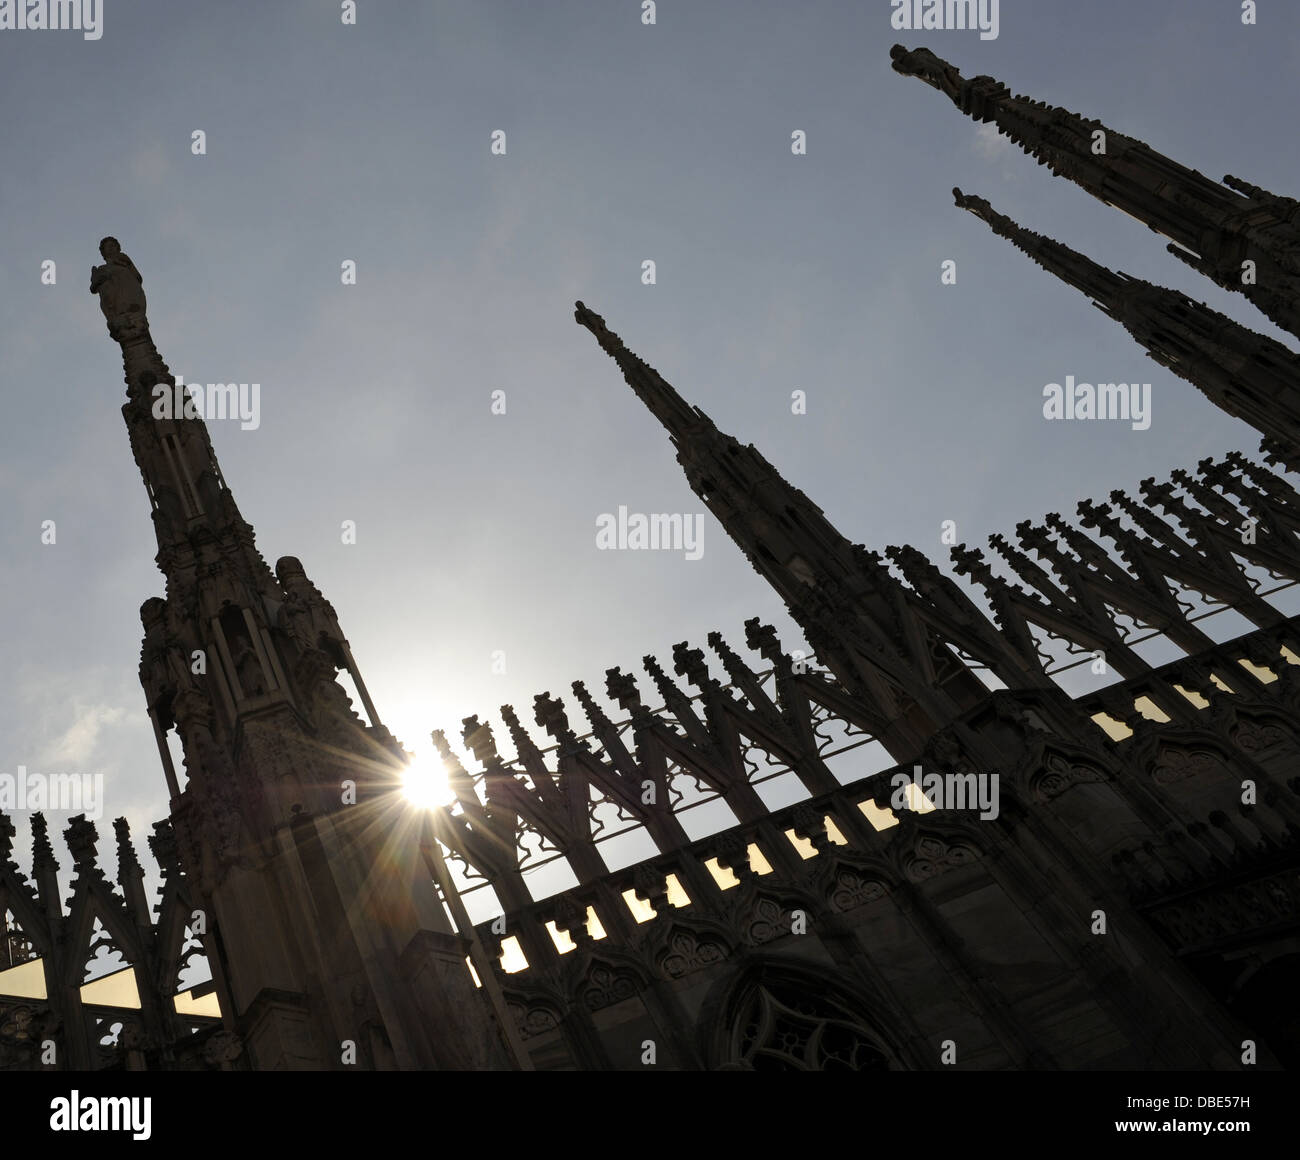 Italy. Milan. Cathedral. Gothic. 14th century. Exterior. Detail. - Stock Image